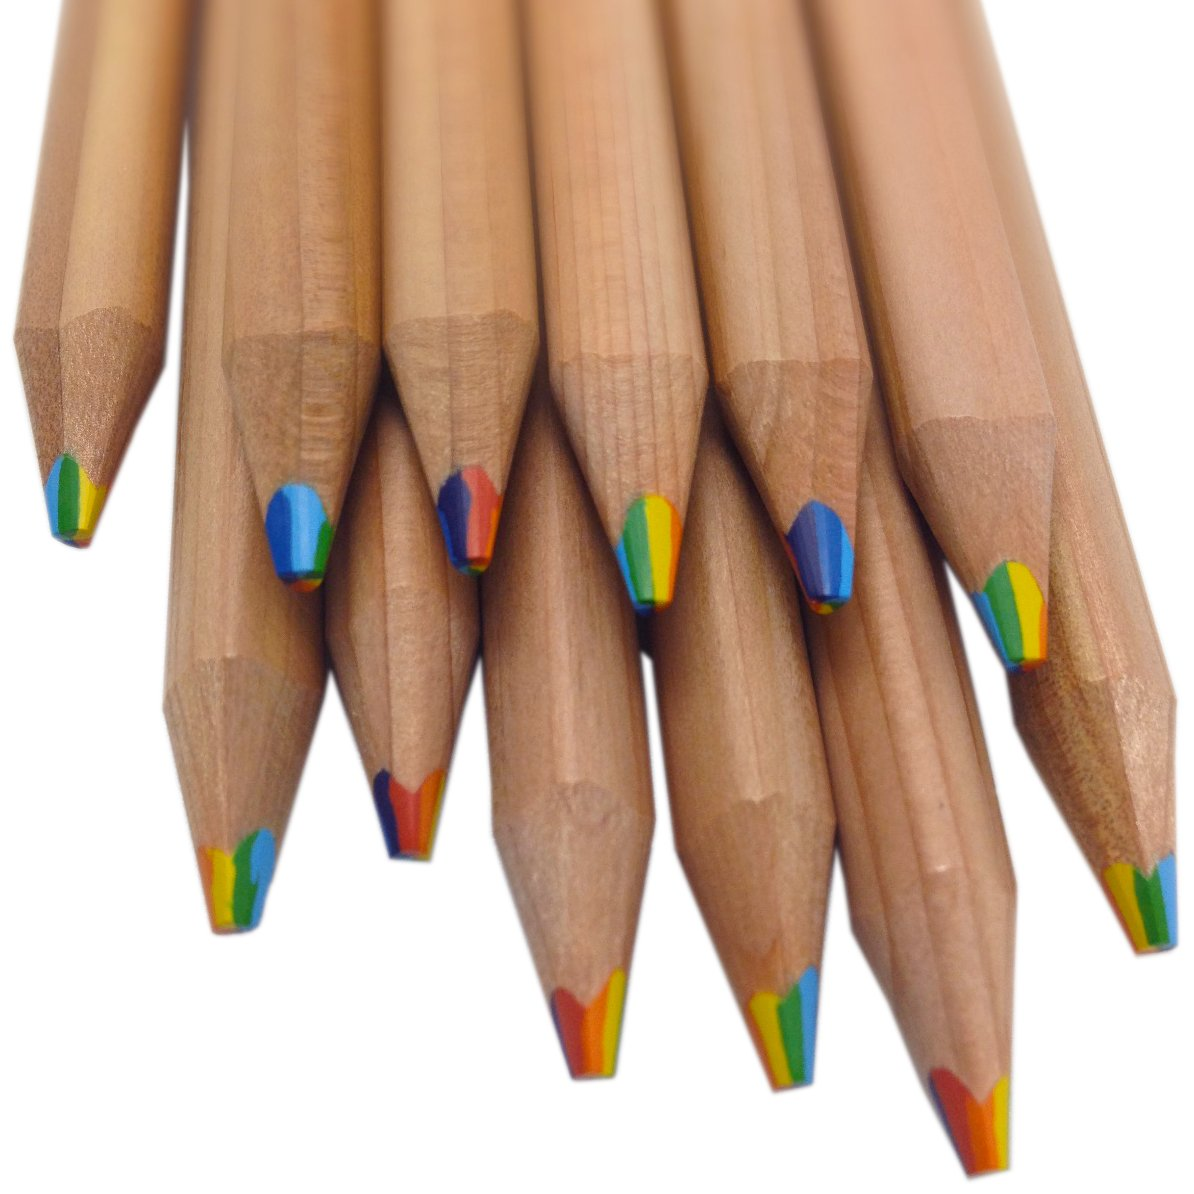 Rainbow Pencils - 7 Colors in 1 Pencil made from Natural Cedar (Bundle of 12) Writes in a rainbow of Brilliant Colors by Stubby Pencil Studio